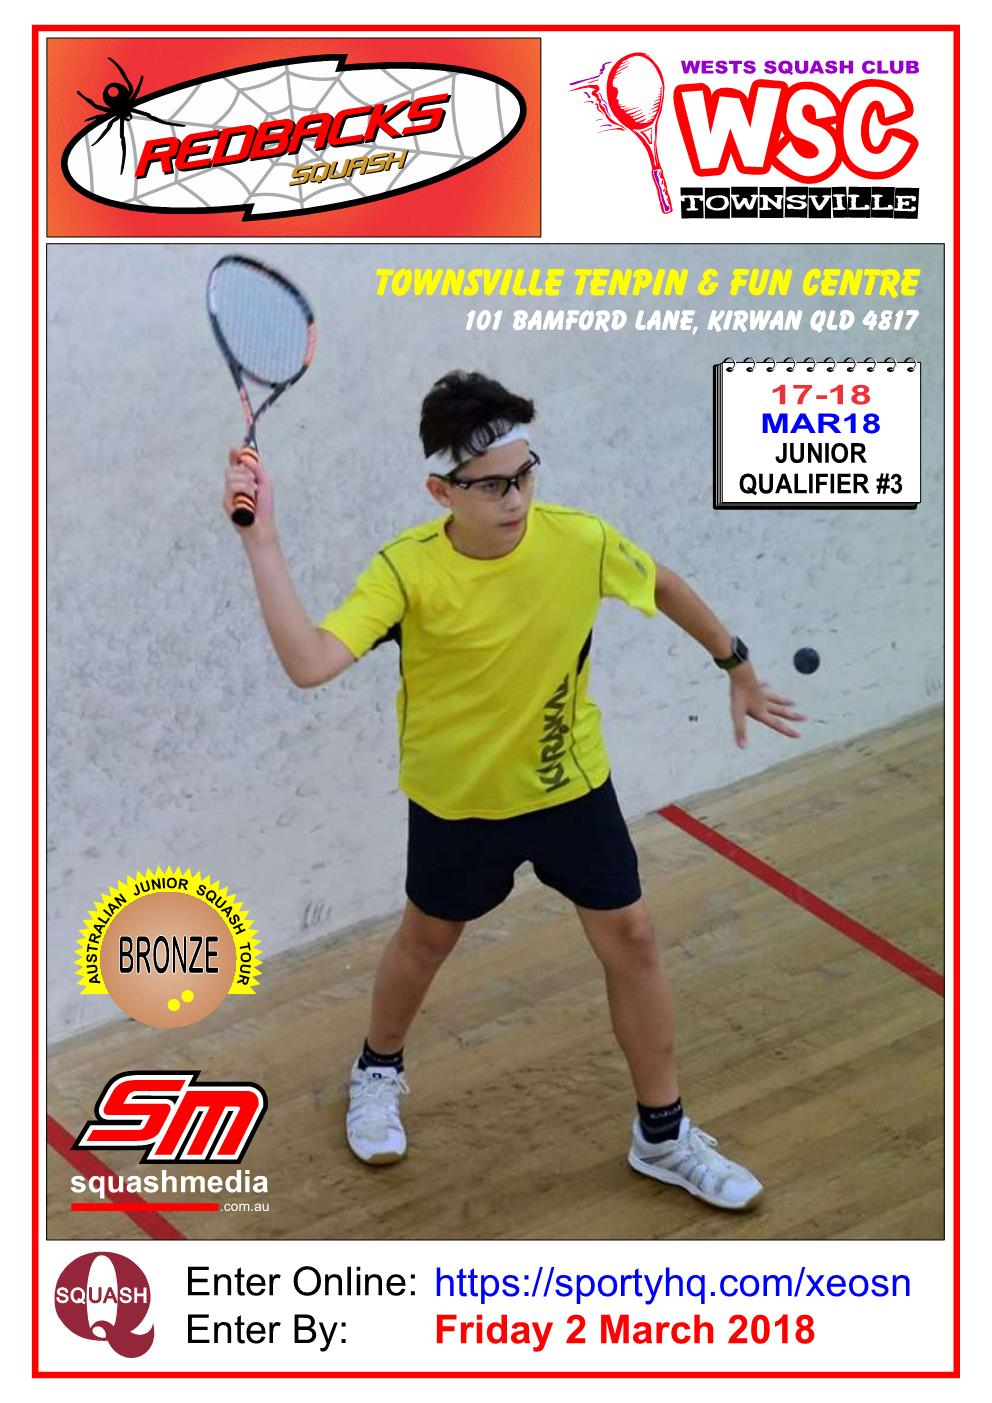 Squash courts townsville